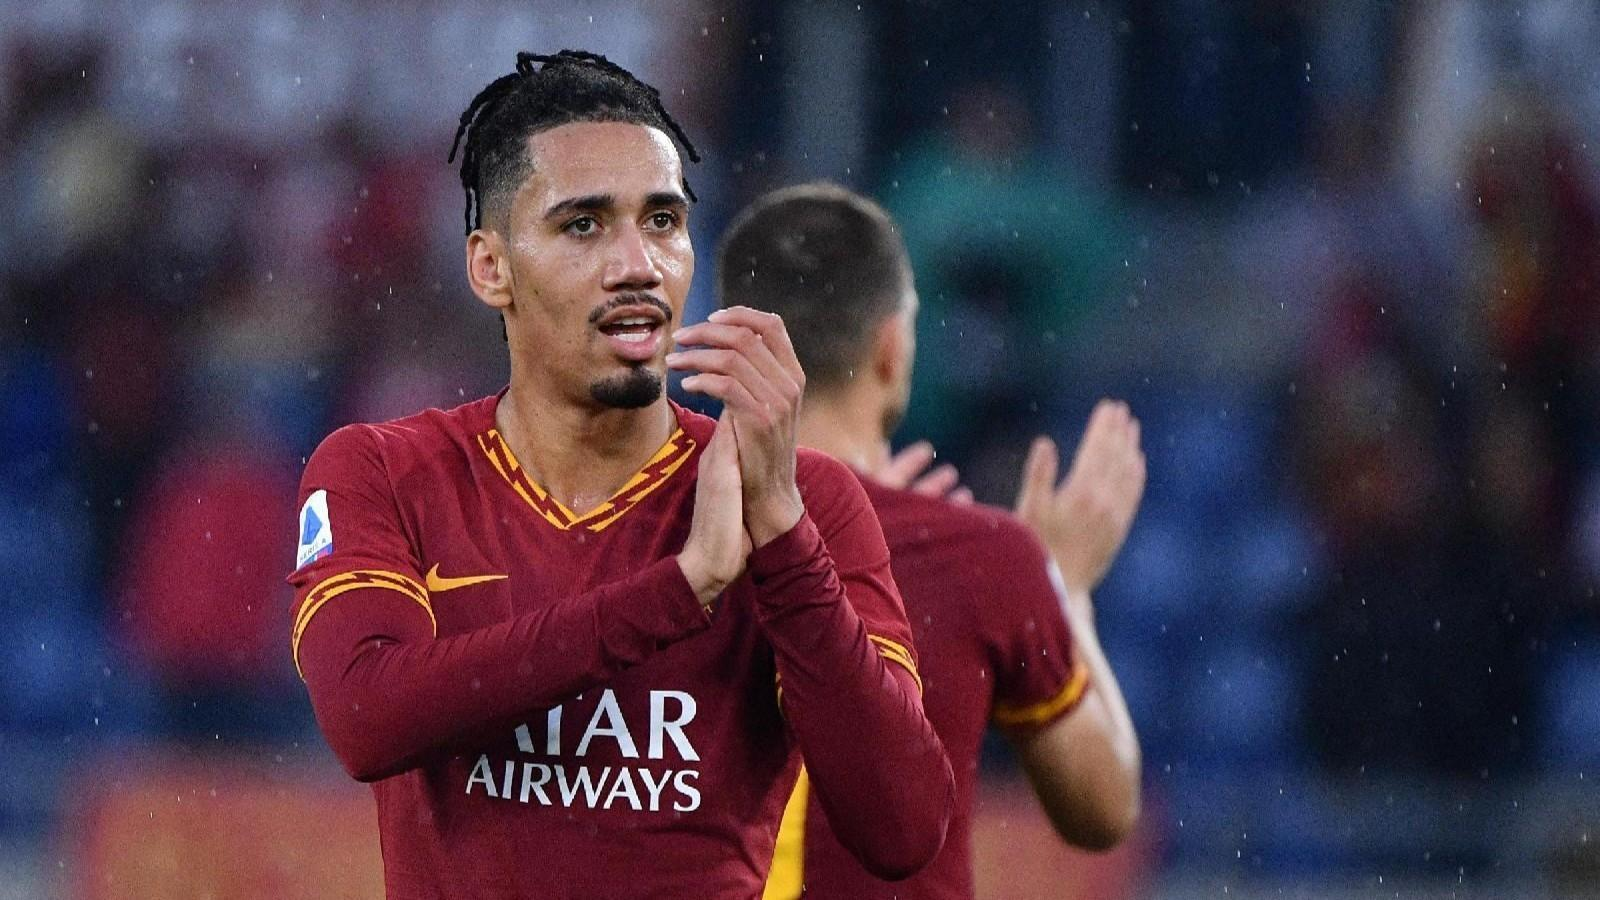 Chris Smalling è a Roma in prestito dal Manchester United ©LaPresse